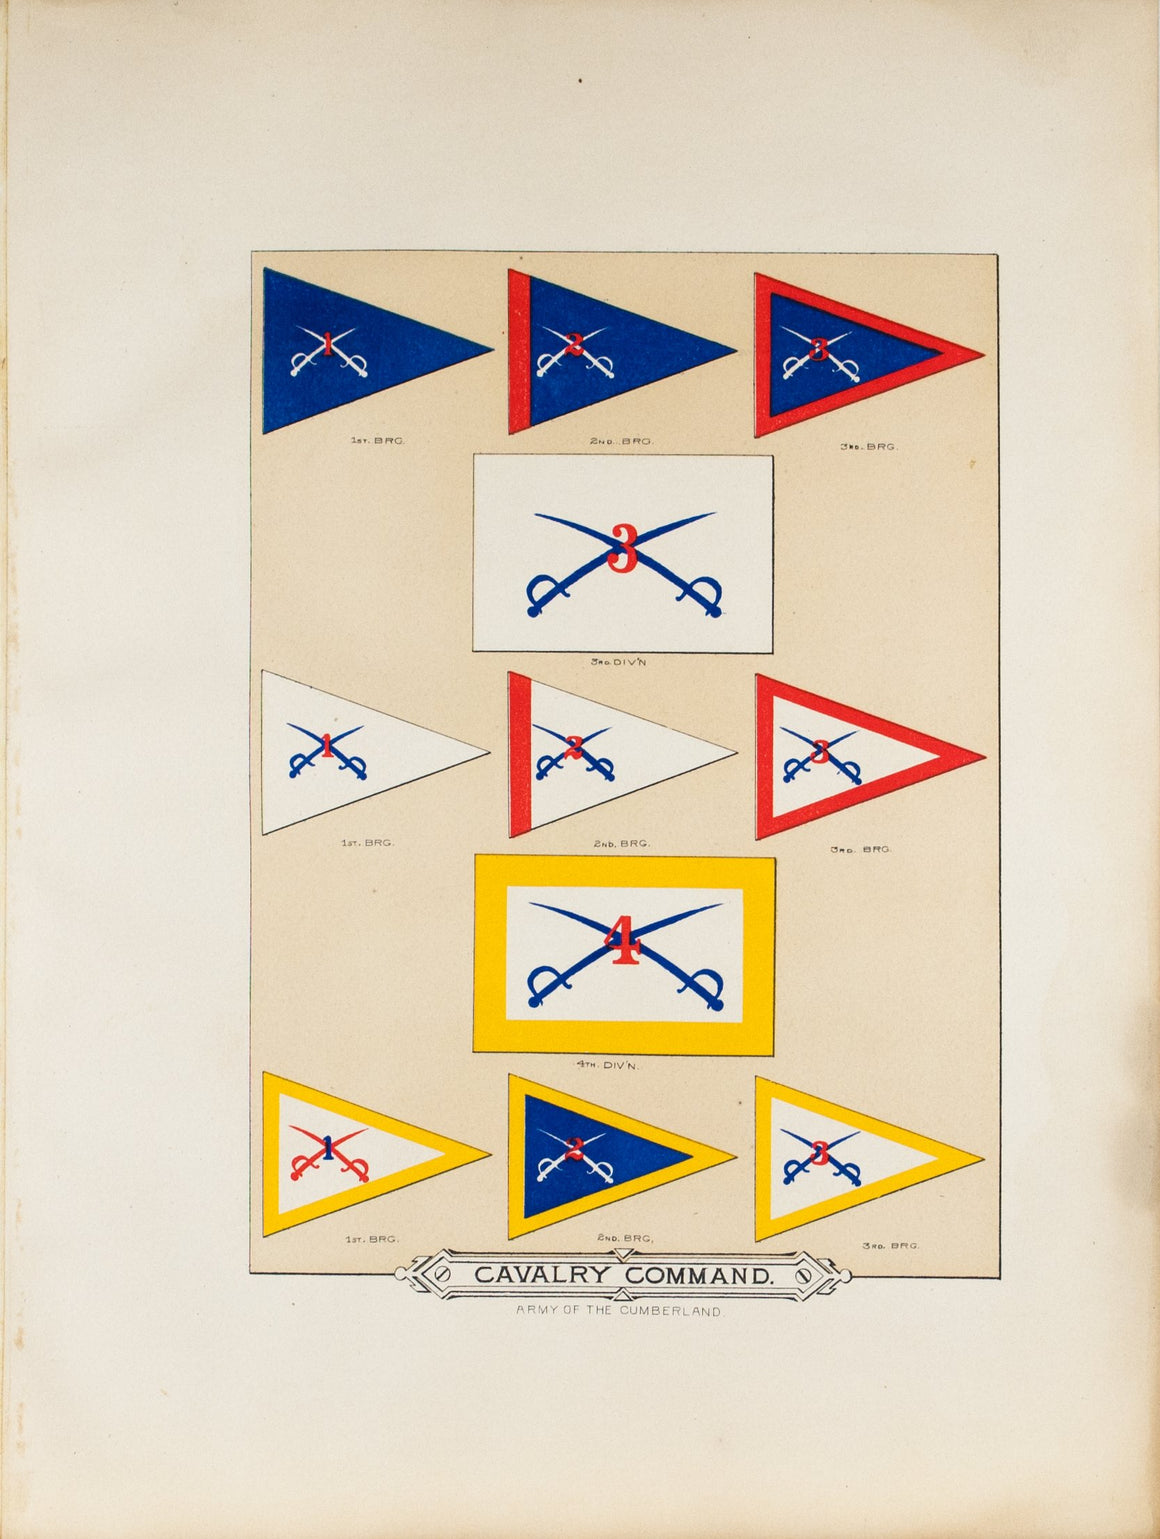 Cavalry Command Antique Civil War Union Army Flag Print 1887